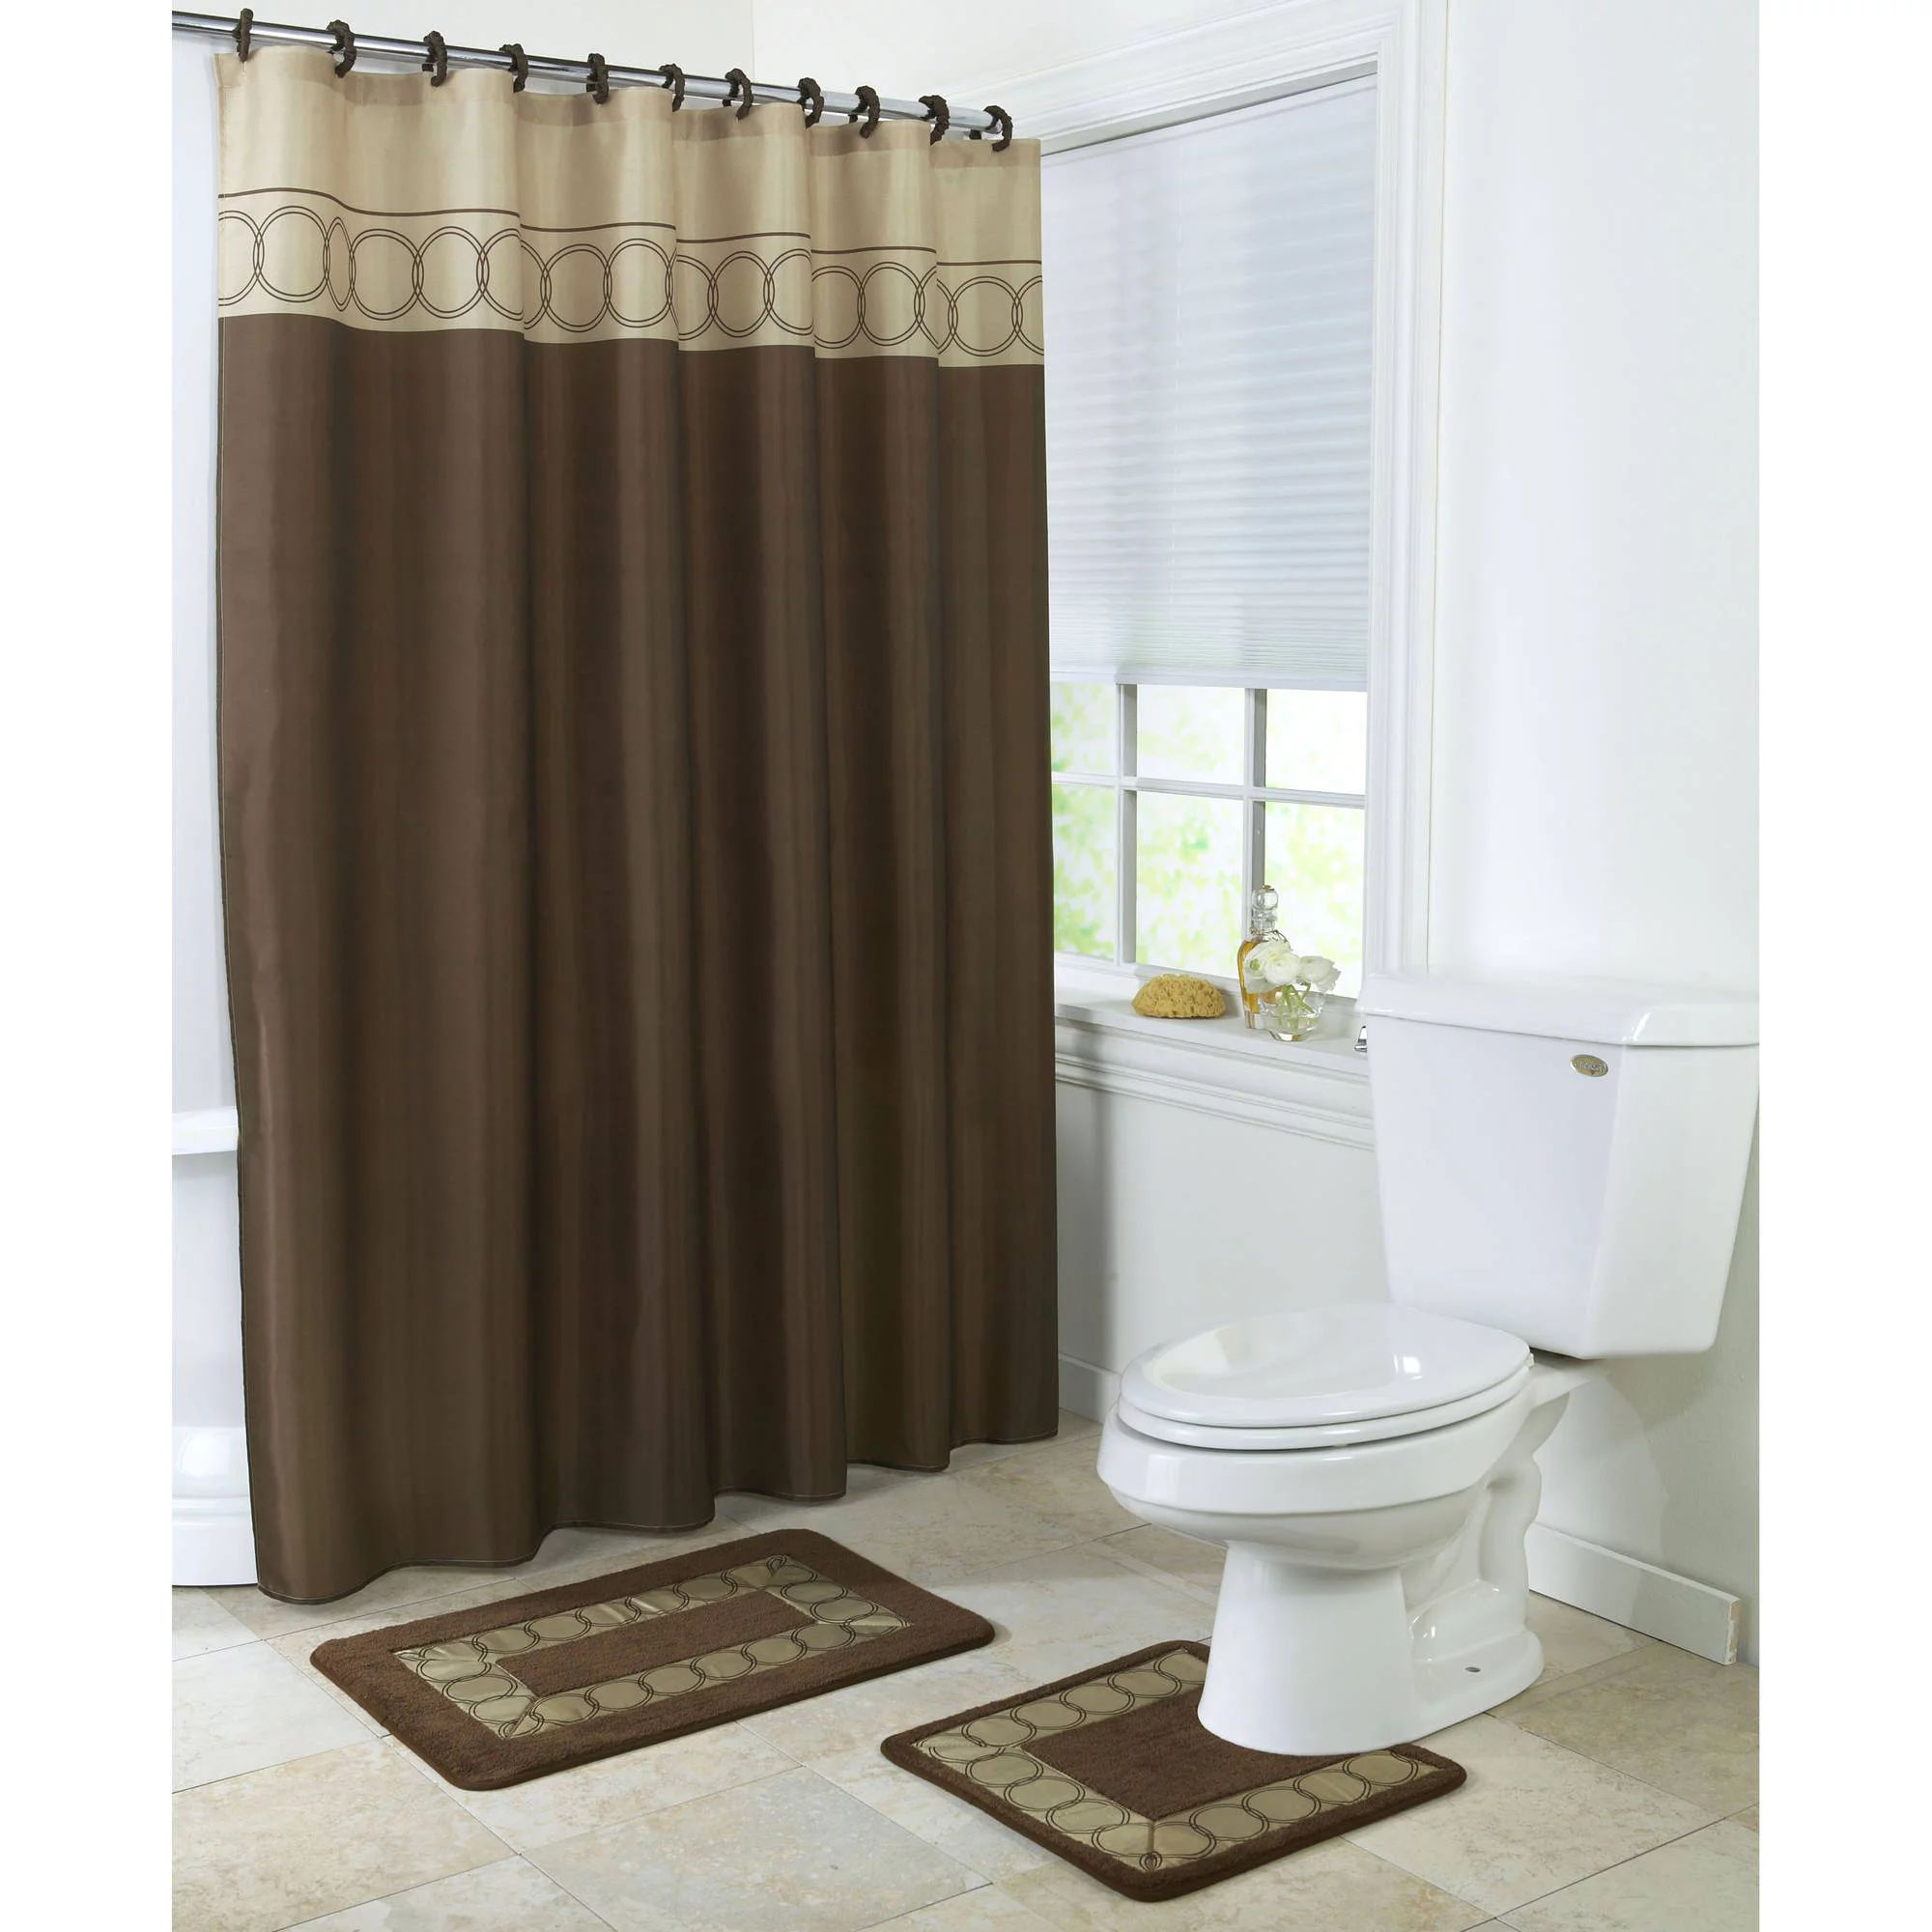 Vcny home lily butterfly 15 piece polyester bath in a bag set shower curtain and bath rugs included walmart com